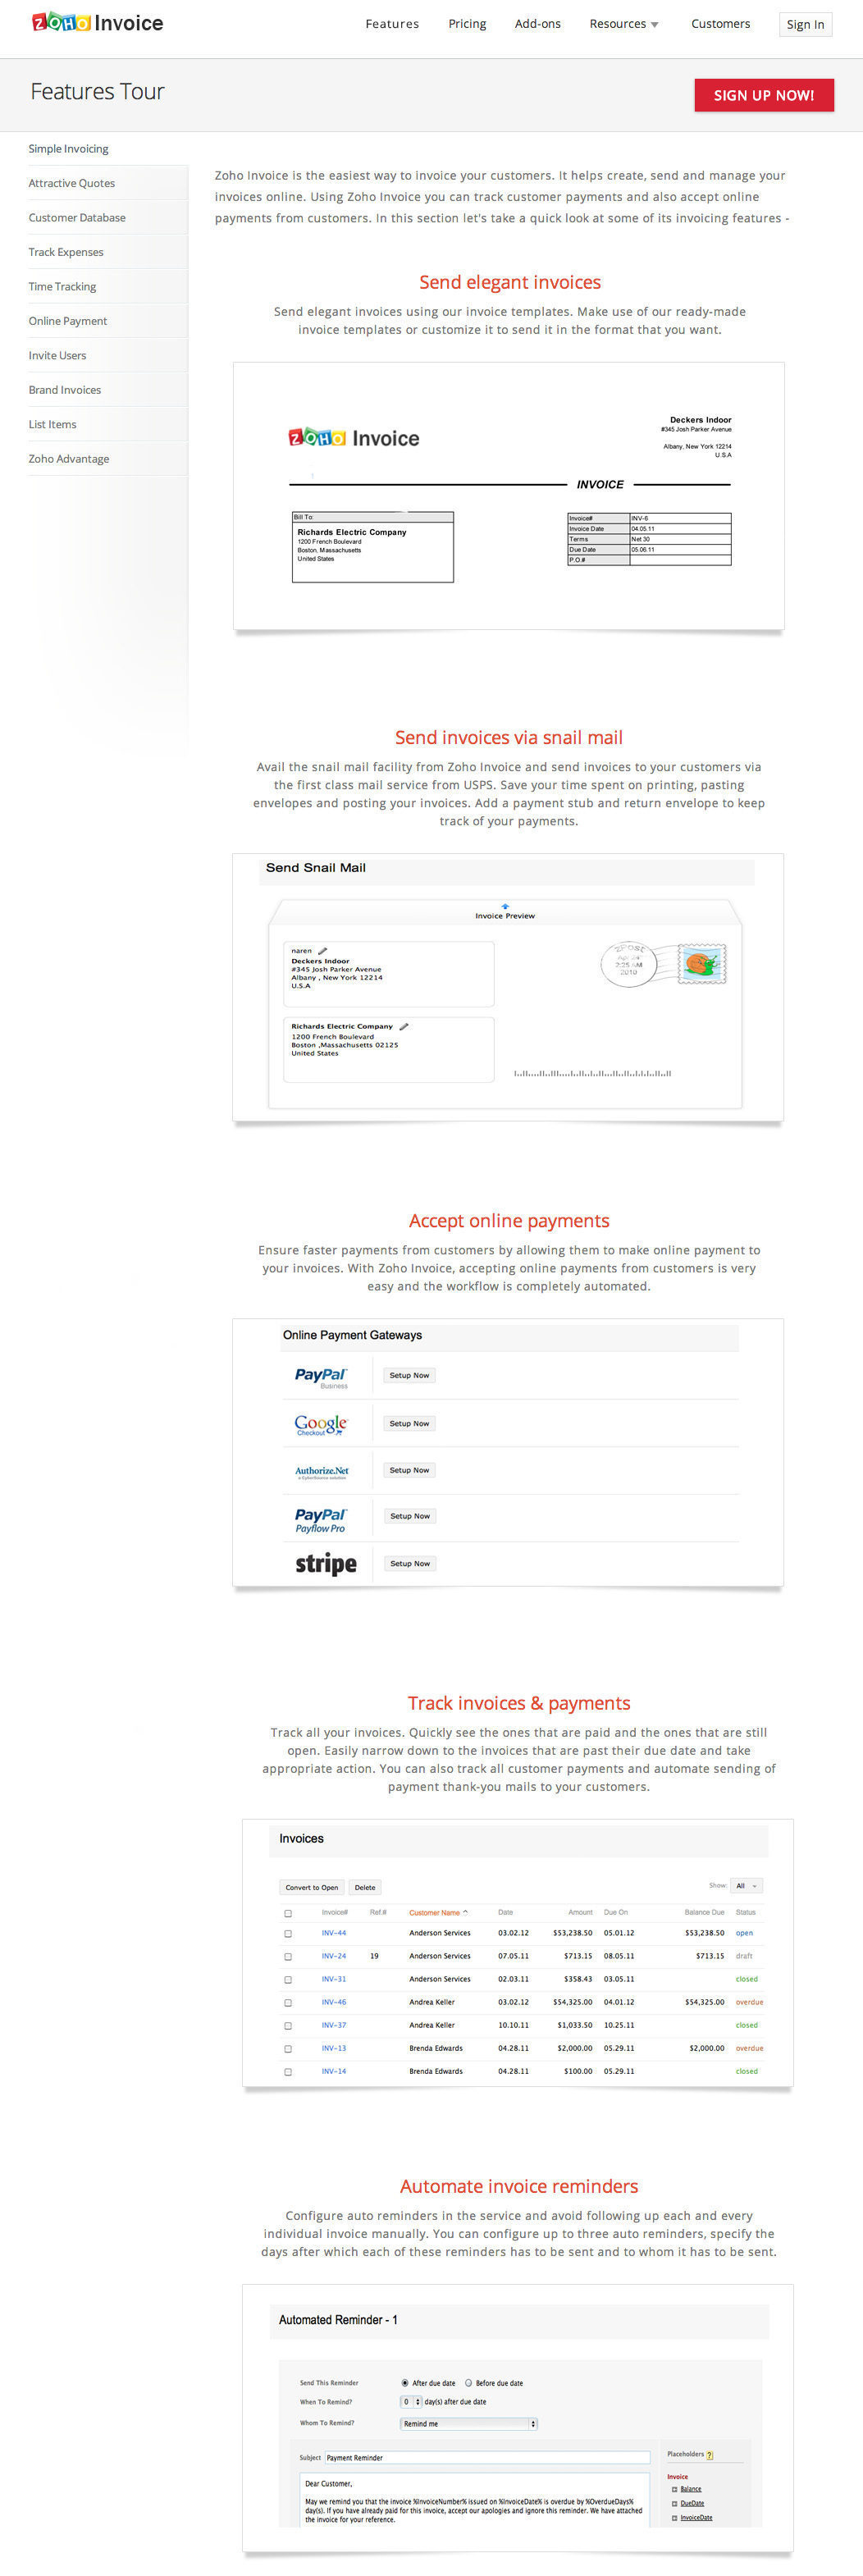 Weverducreus  Surprising Top  Complaints And Reviews About Zoho Invoice With Heavenly Zoho Invoice Pricing Zoho Invoice  Simple Invoicing  With Cool How Do You Send A Paypal Invoice Also Invoicing Services In Addition Invoice Template Free Printable And Canada Customs Invoice Form As Well As Invoice Printable Additionally Invoice Prices On Cars From Consumeraffairscom With Weverducreus  Heavenly Top  Complaints And Reviews About Zoho Invoice With Cool Zoho Invoice Pricing Zoho Invoice  Simple Invoicing  And Surprising How Do You Send A Paypal Invoice Also Invoicing Services In Addition Invoice Template Free Printable From Consumeraffairscom